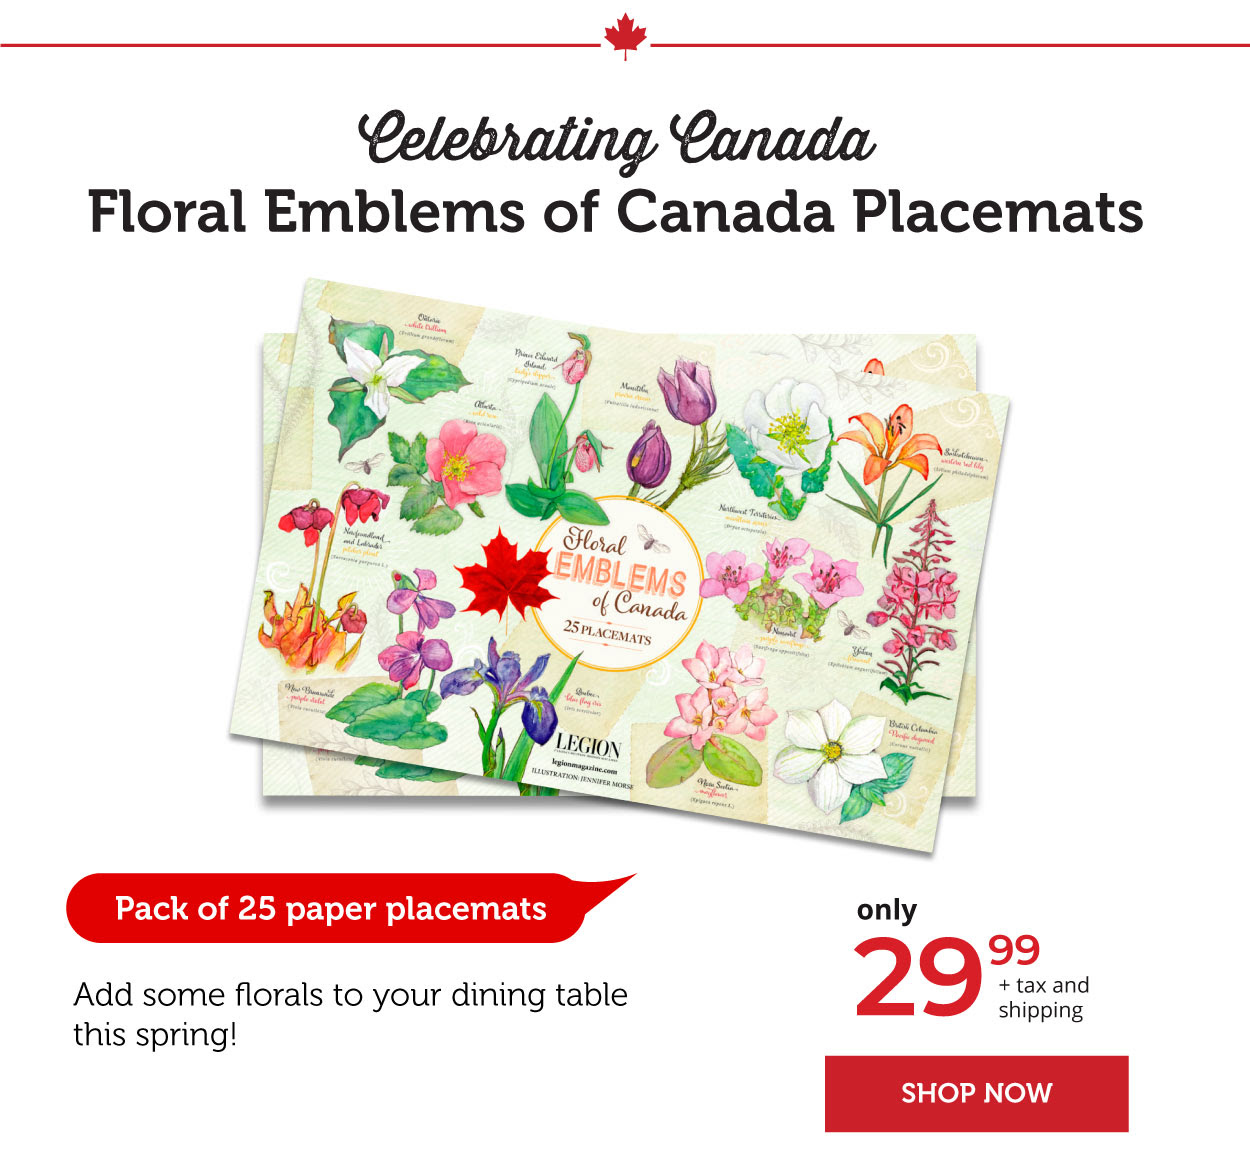 Floral Emblems of Canada Placemats